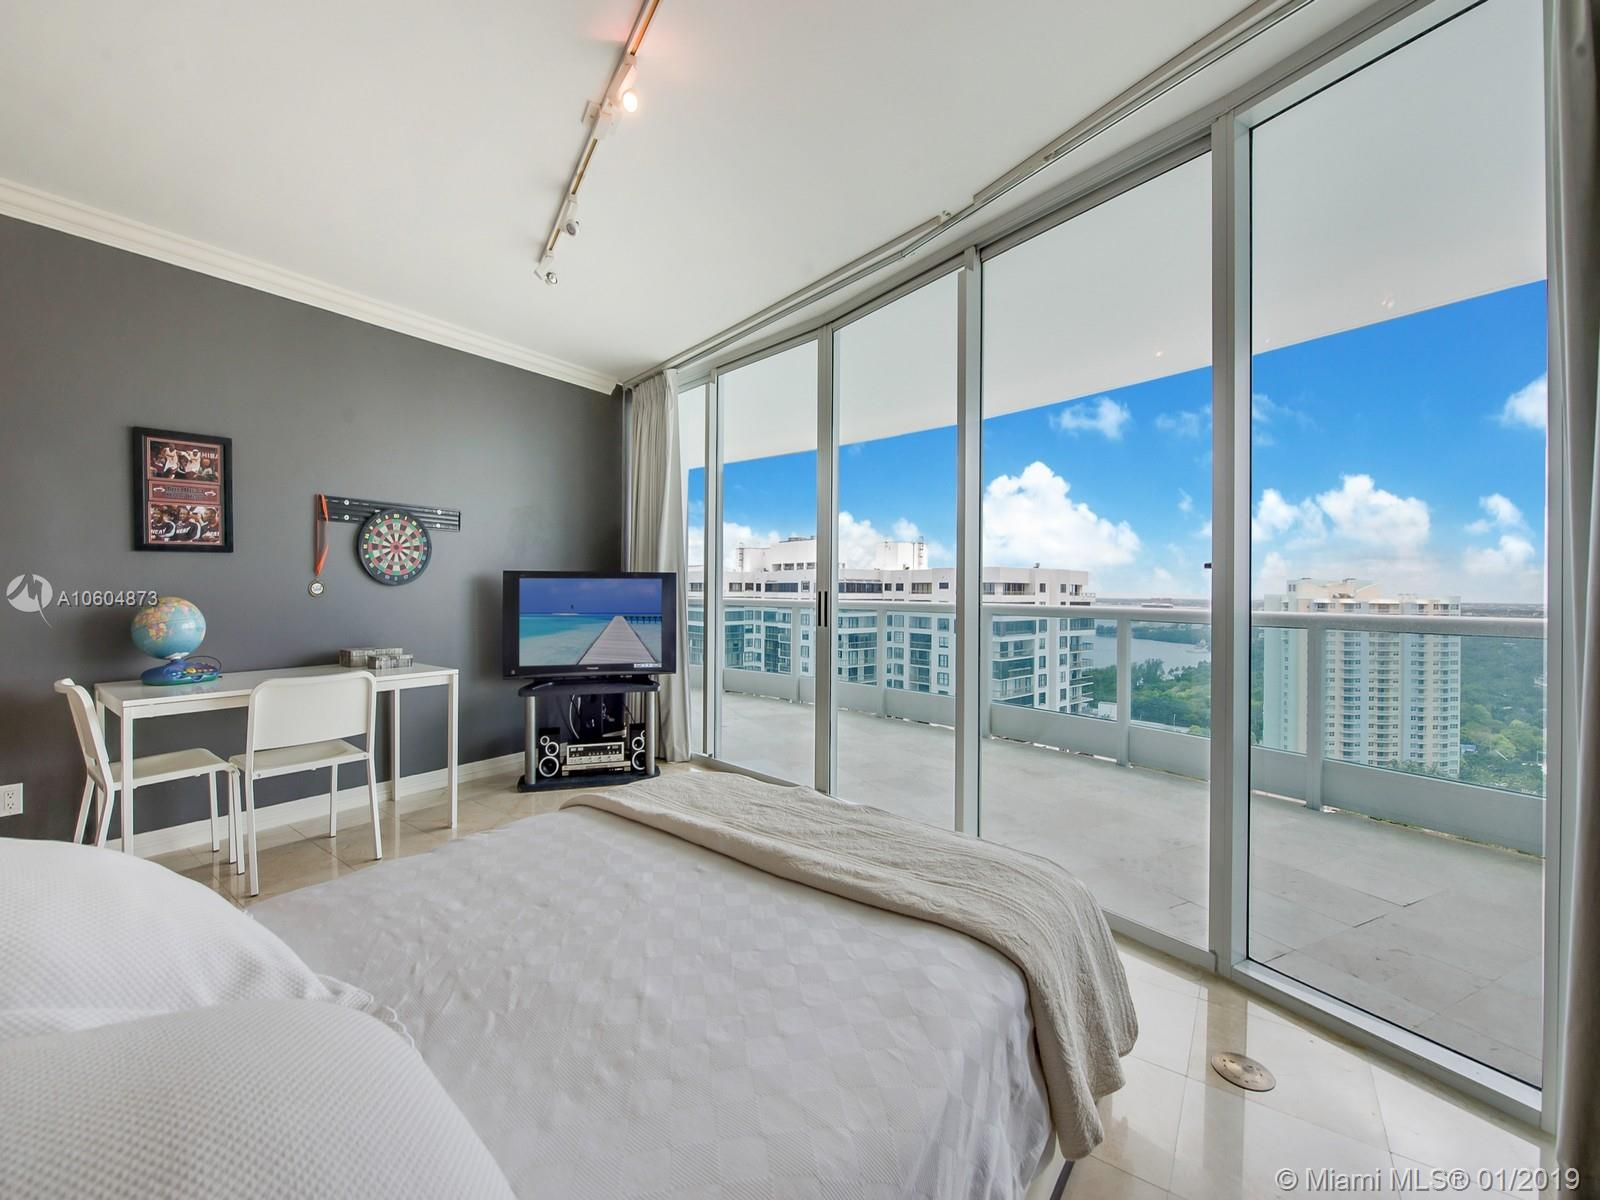 2127 Brickell Avenue, Miami, FL 33129, Bristol Tower Condominium #3102, Brickell, Miami A10604873 image #9